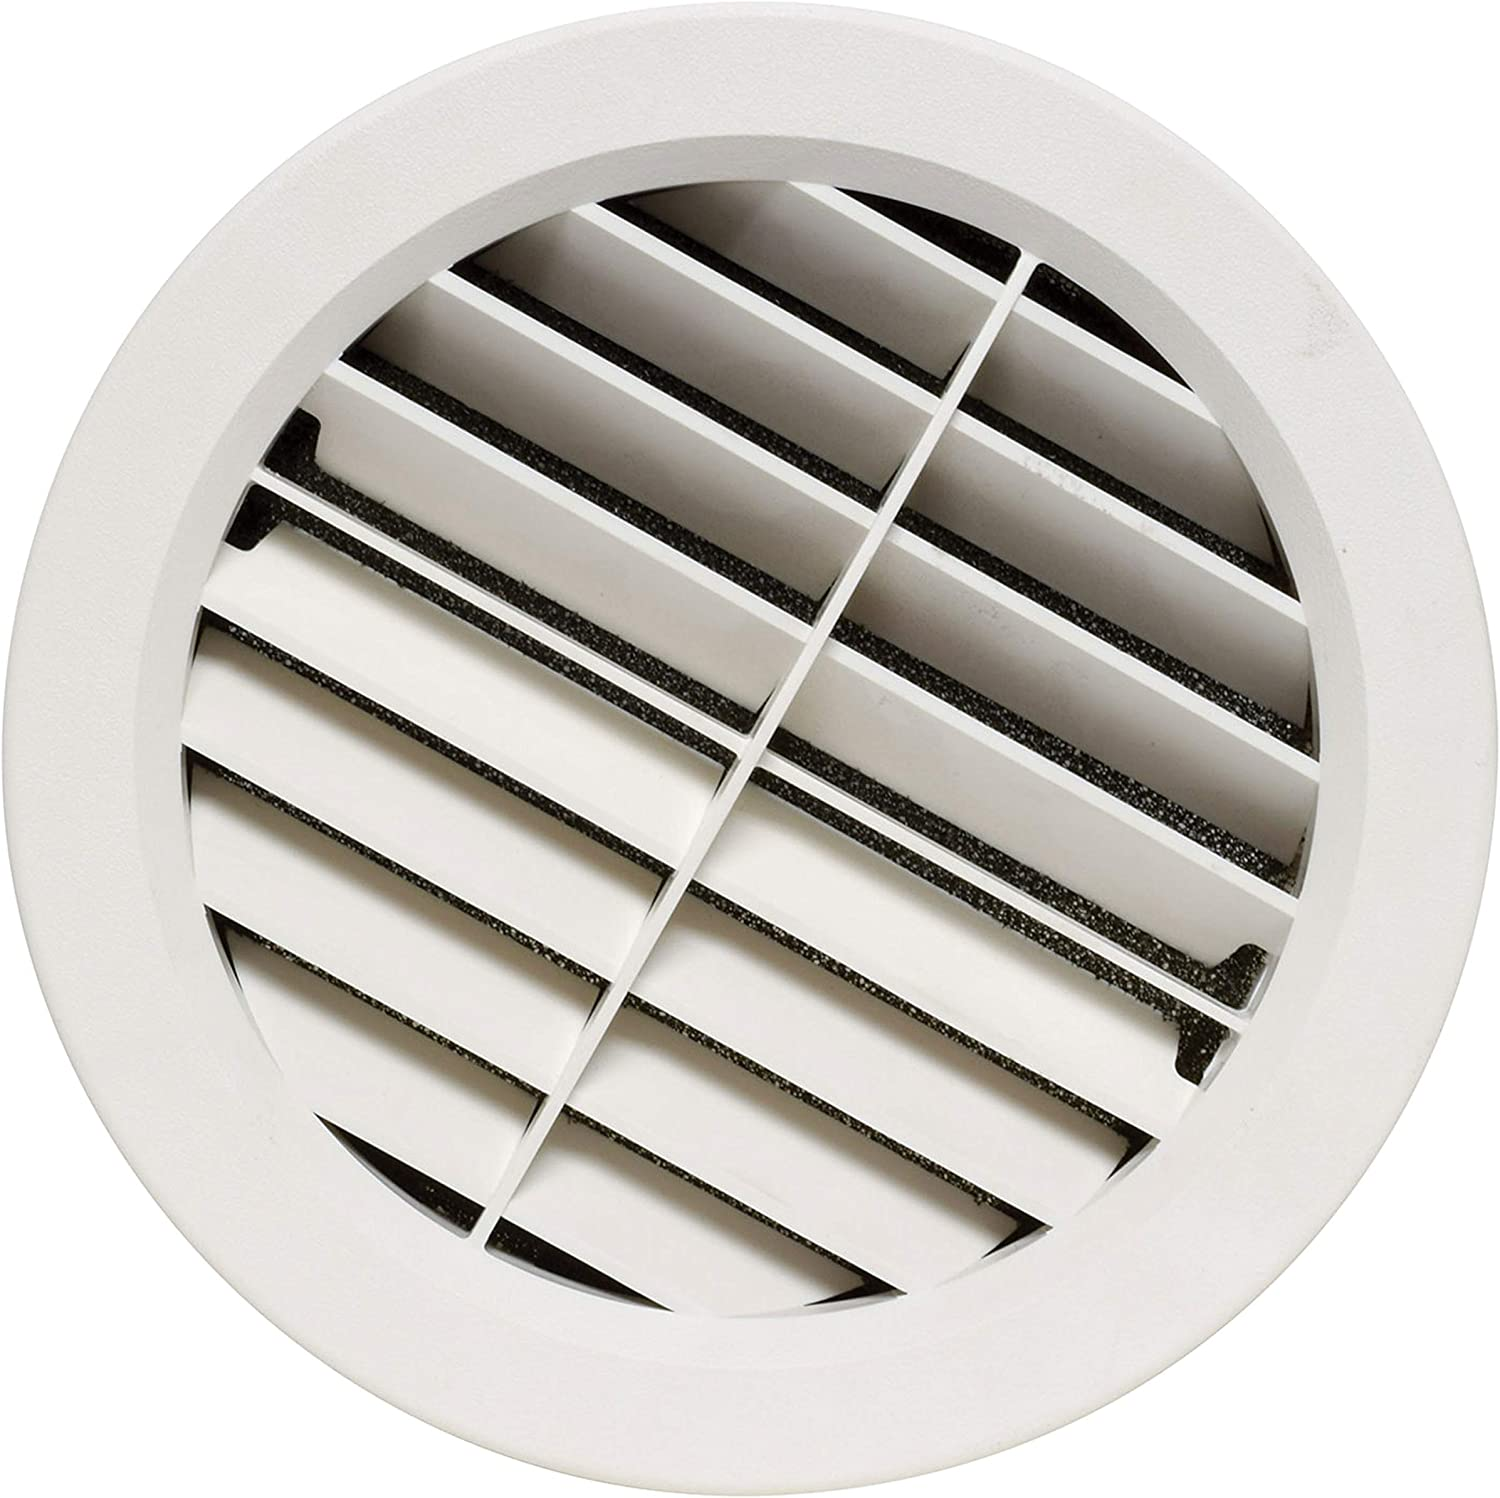 "Valterra A10-3361VP Beige Rotating Heat and A/C Register with Fixed Vane (5"" ID, 7/8"" Collar)"